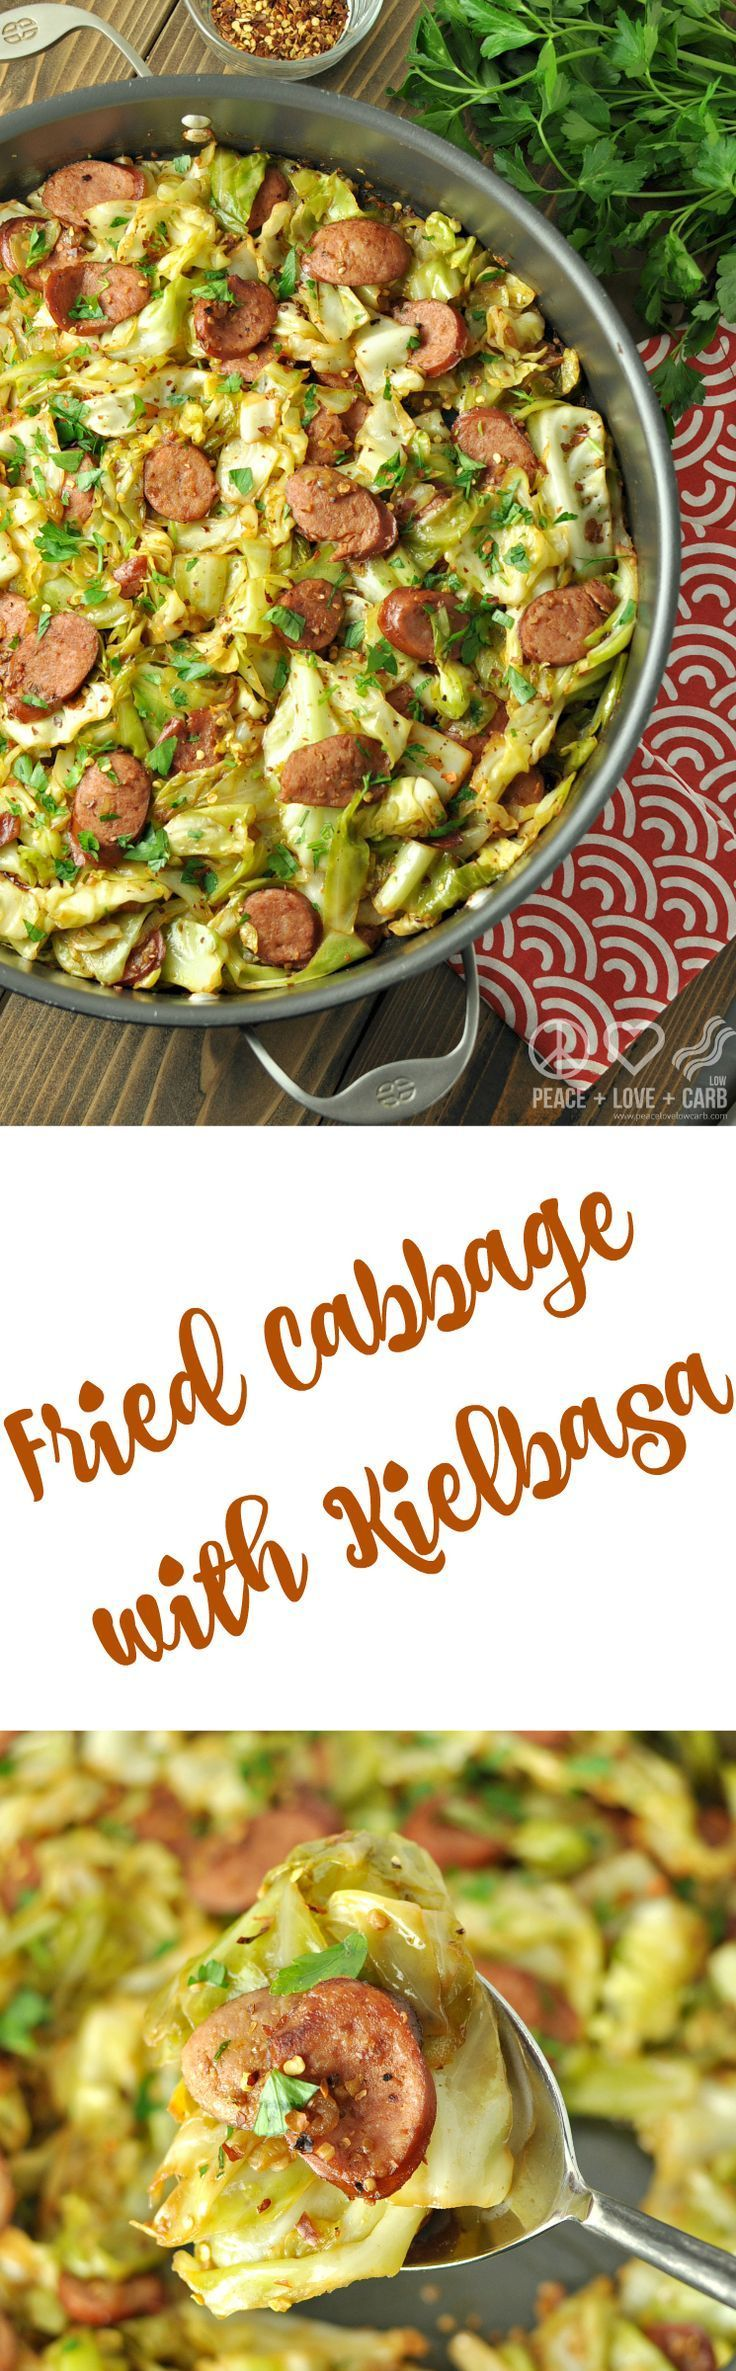 Easy Sausage and Cabbage Dinner | Low Carb Maven